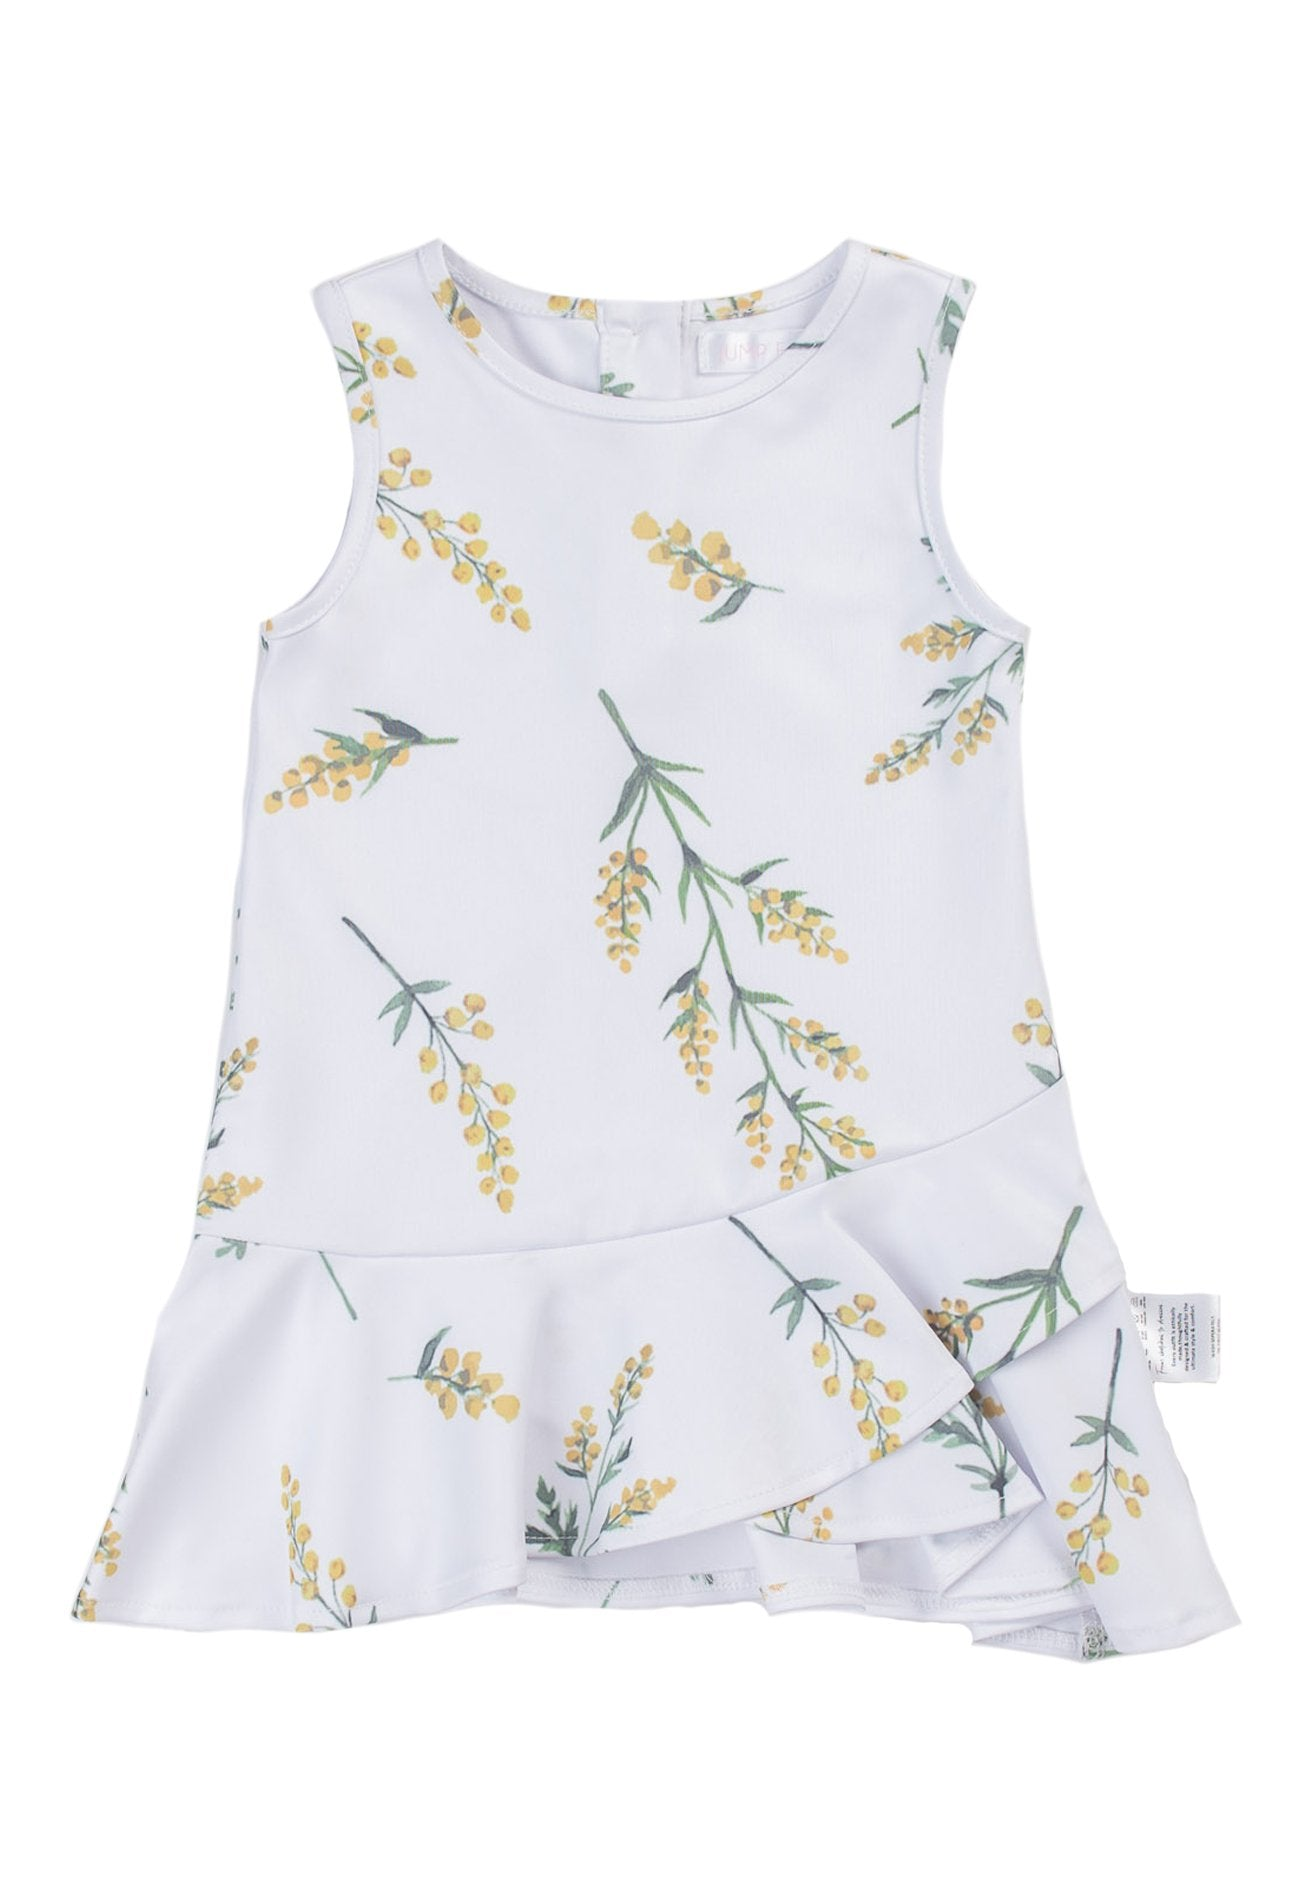 Olivia Printed Flowers Girl Dress  by Jump Eat Cry - Maternity and nursing wear